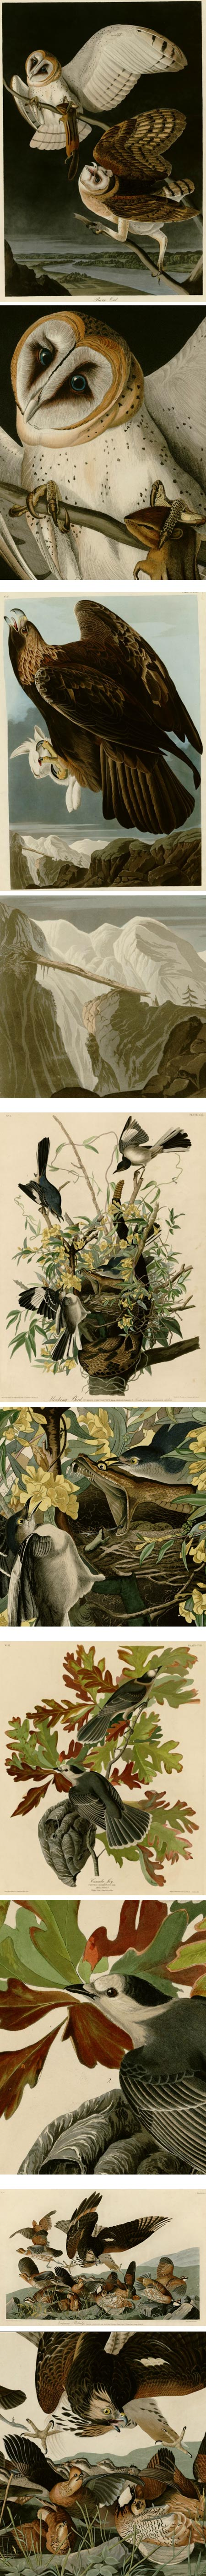 John James Audubon, Birds of America